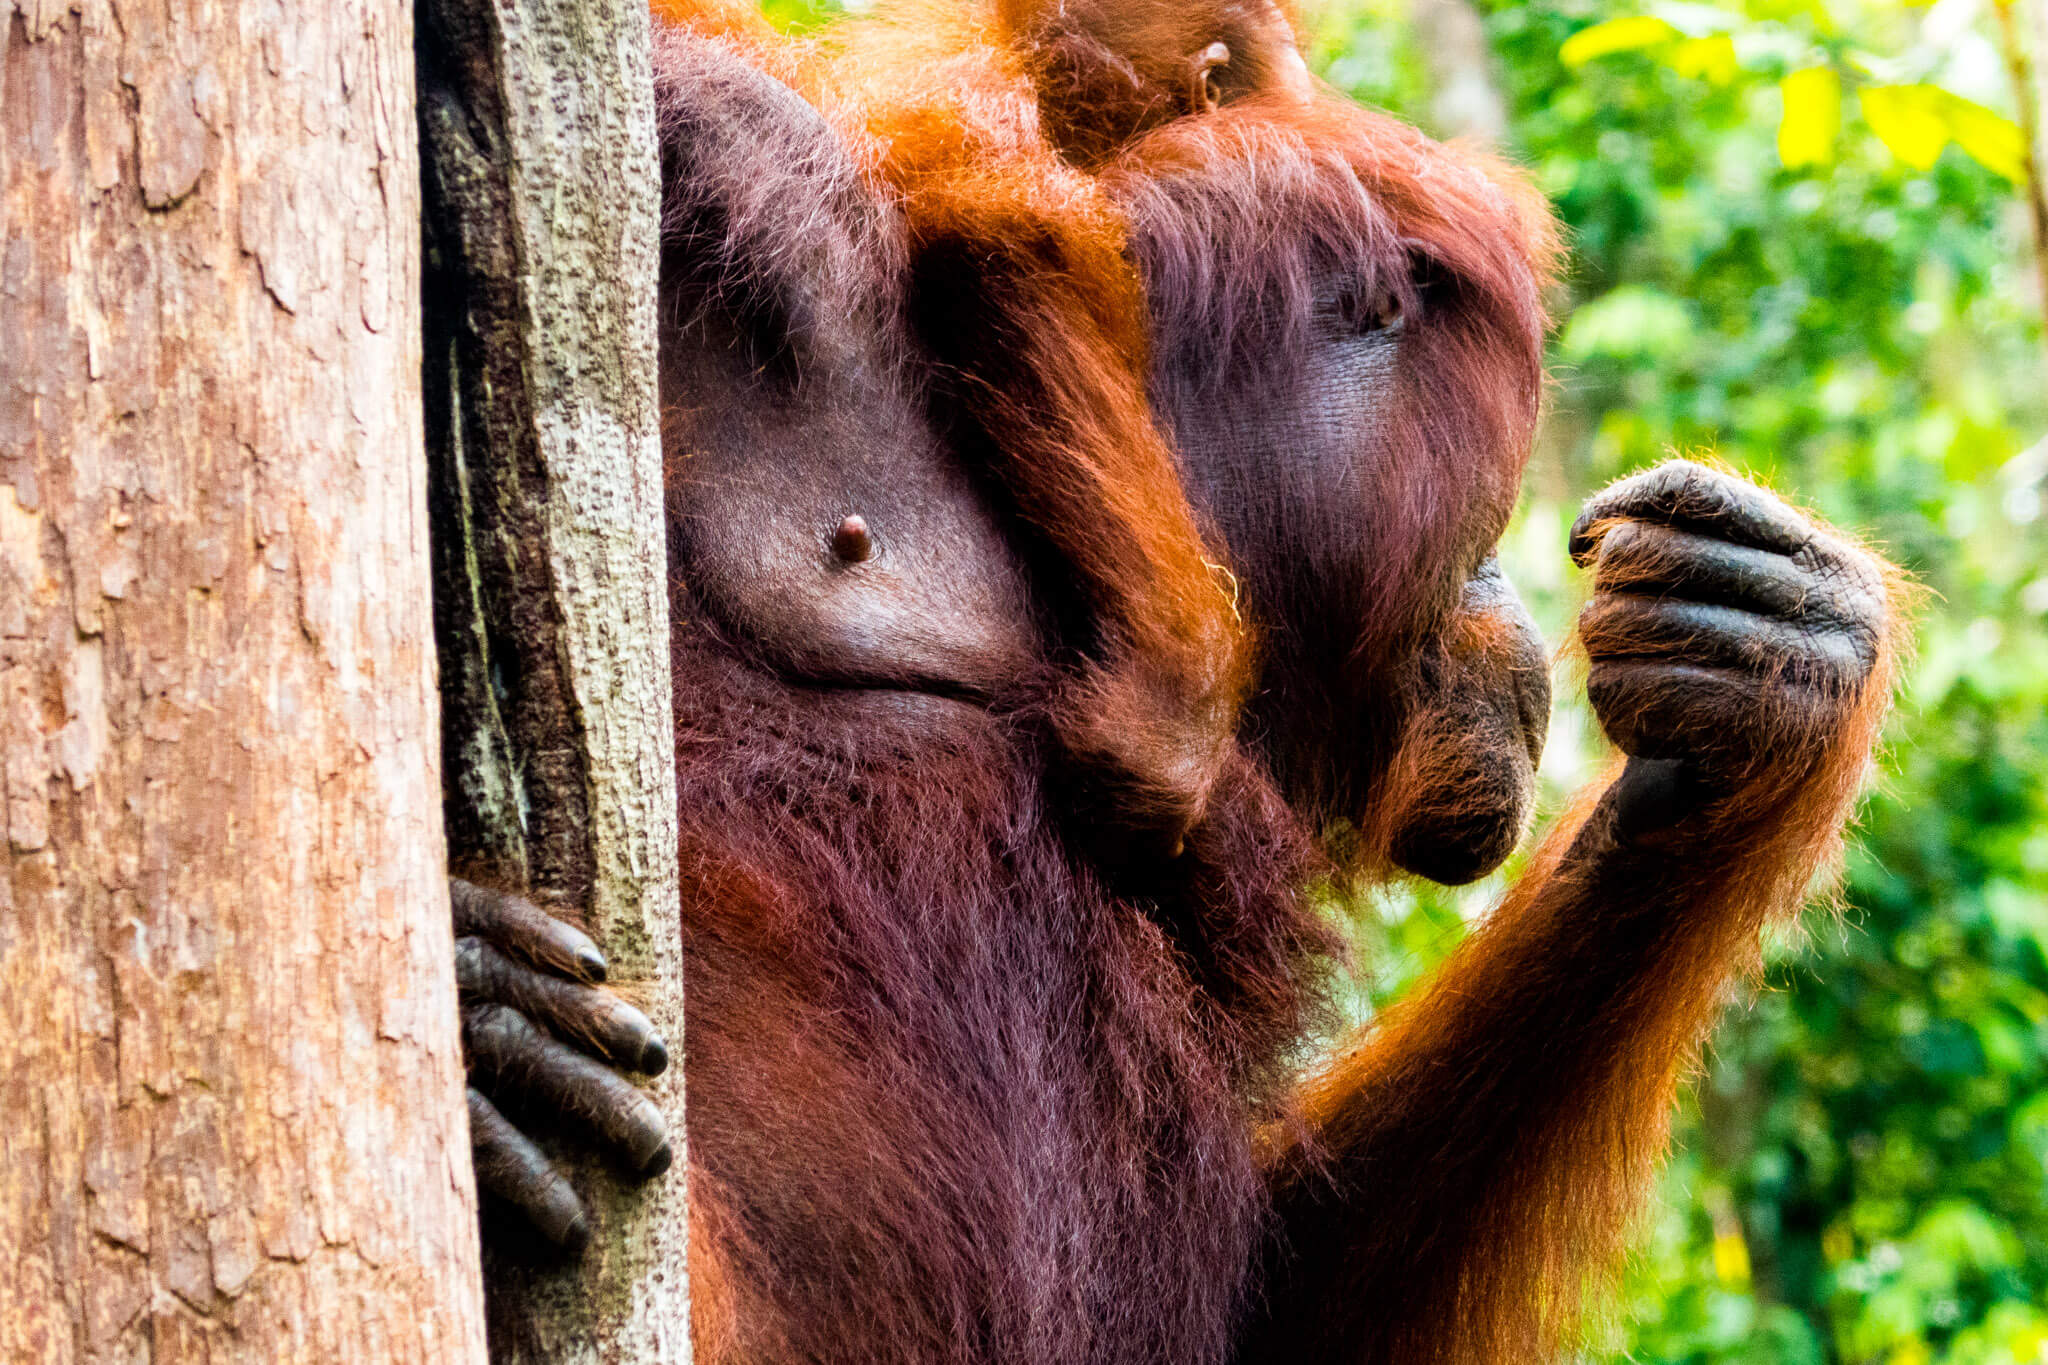 Two orangutans climbing a tree in Tanjung Puting, Borneo